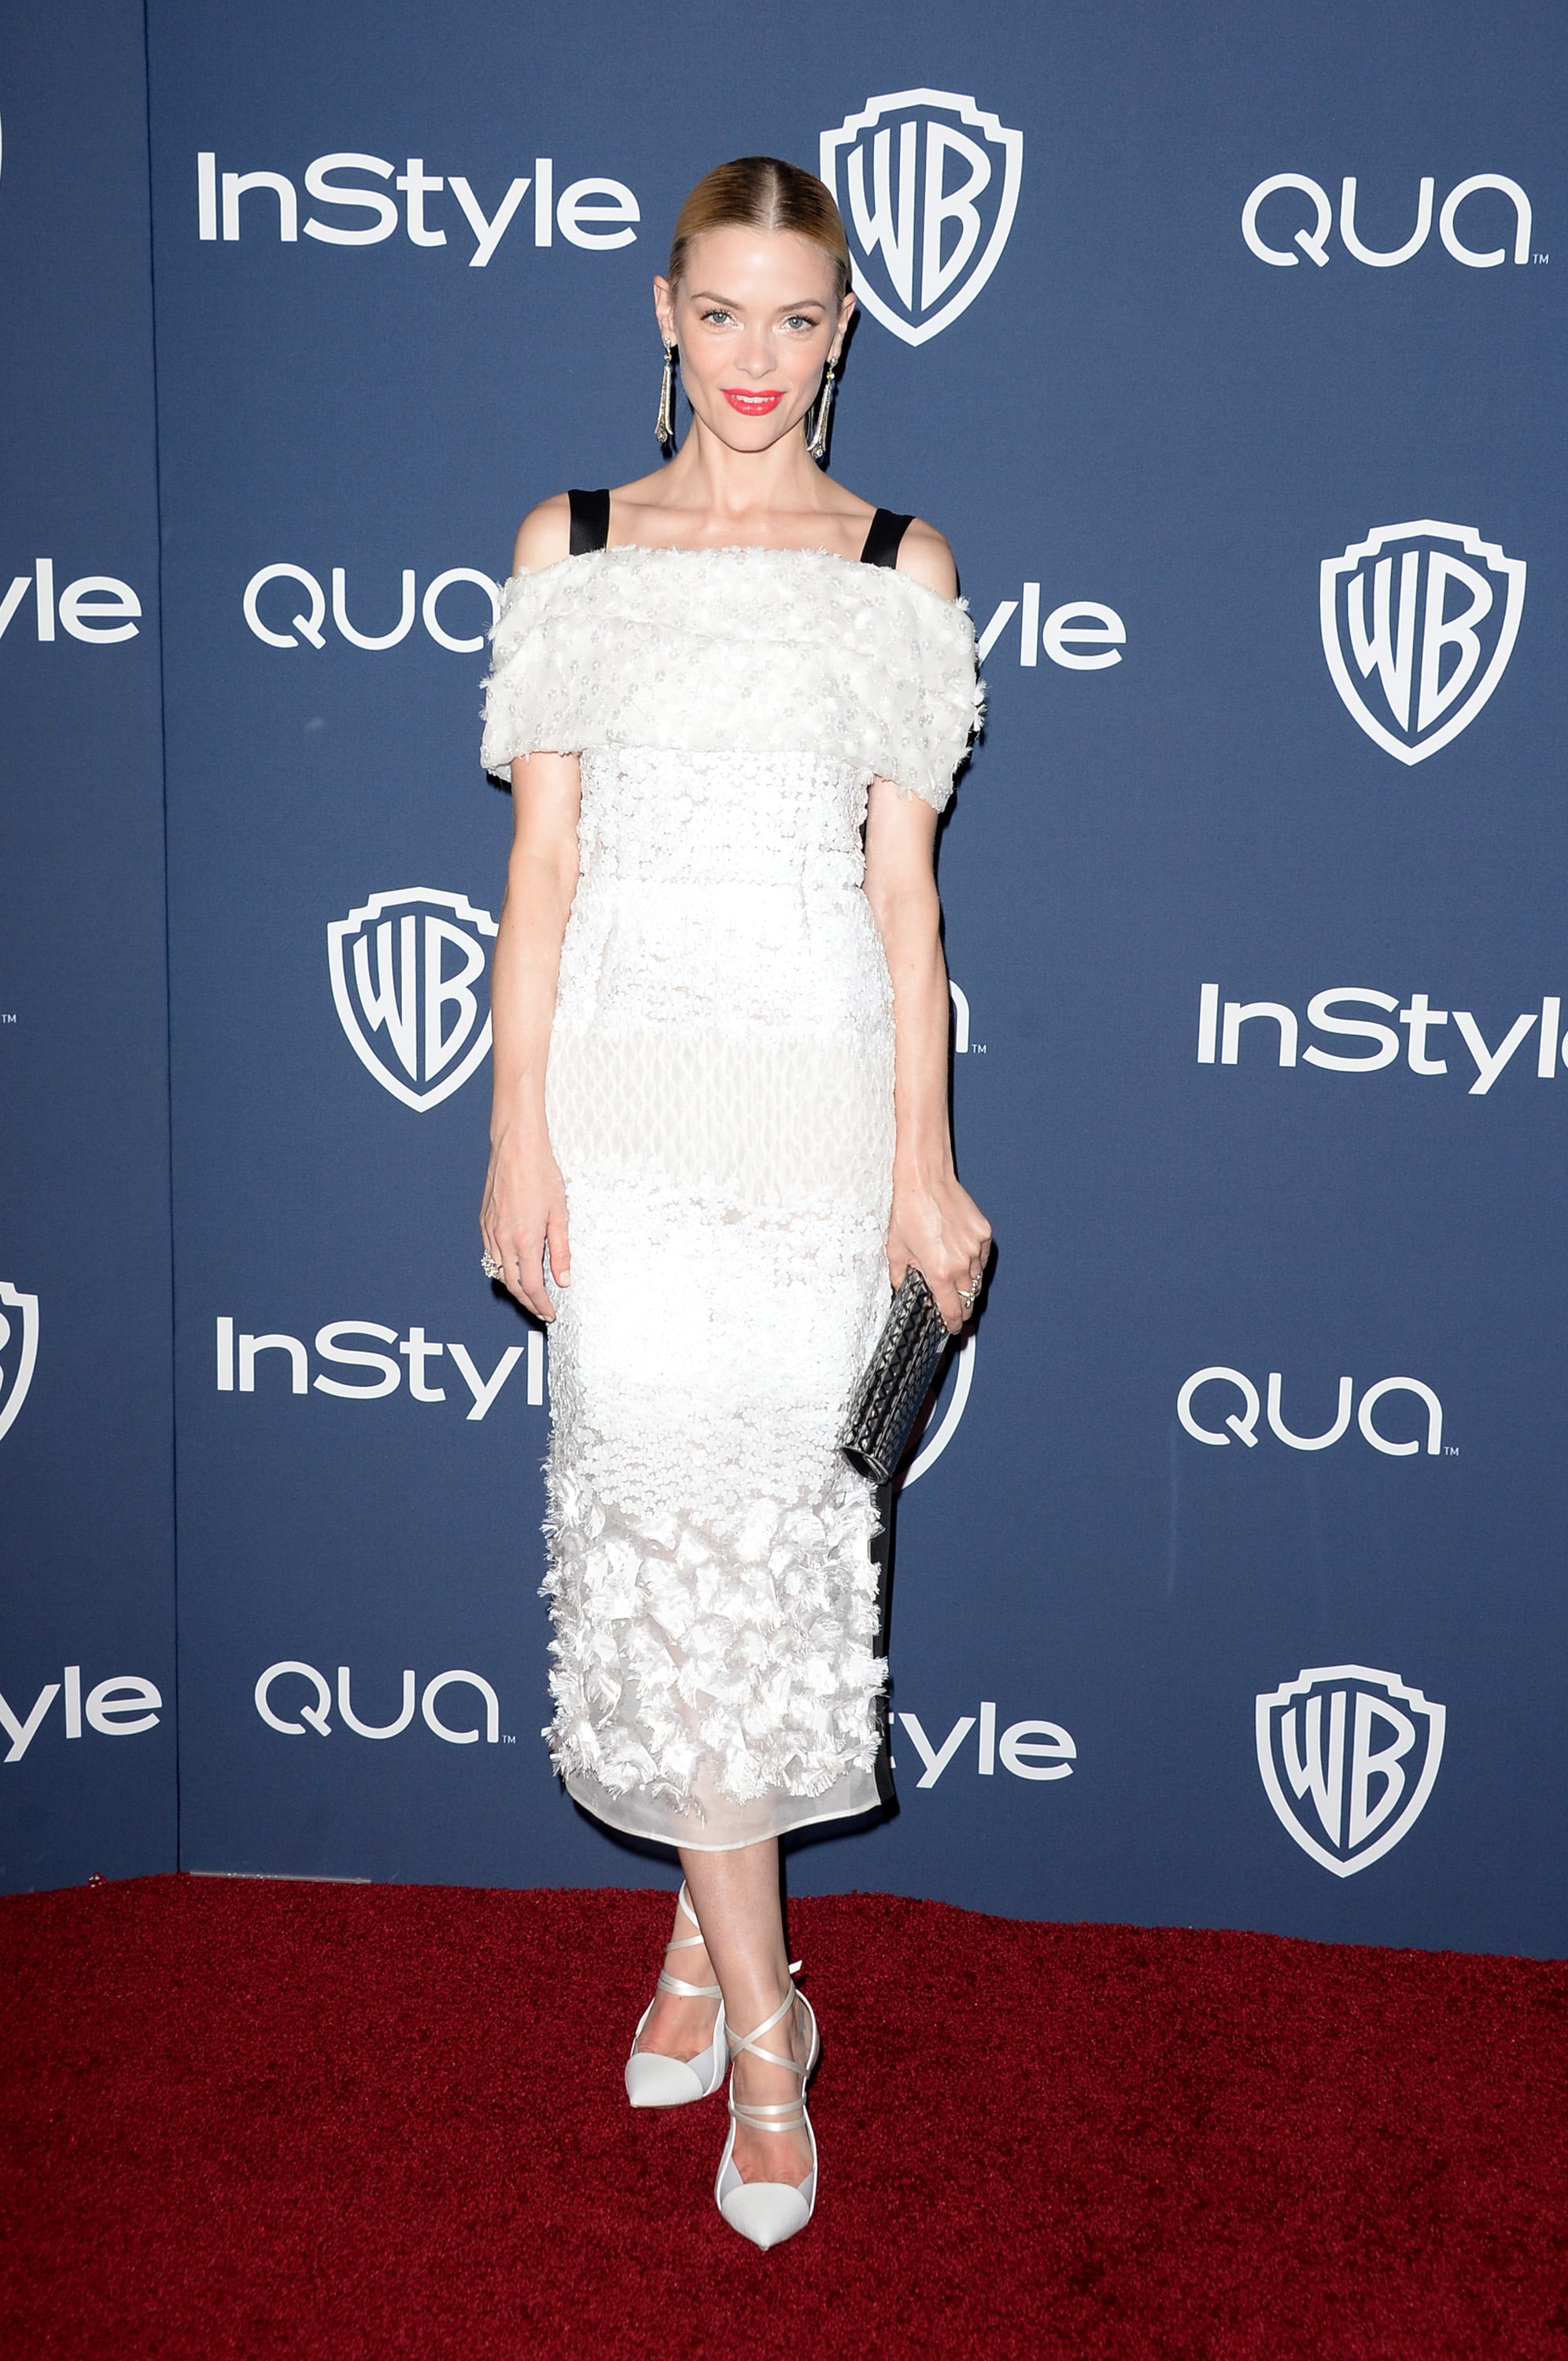 Jaime King in Prabal Gurung at the InStyle Golden Globes party.